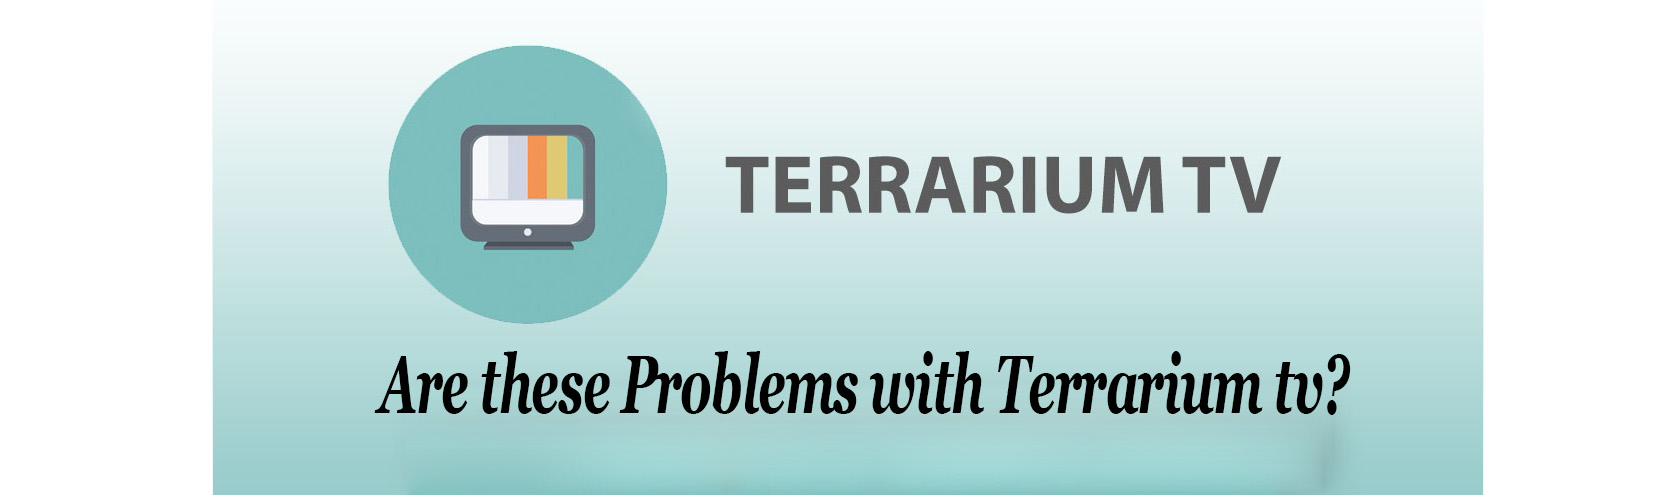 Are these Problems with Terrarium tv? – Leelbox